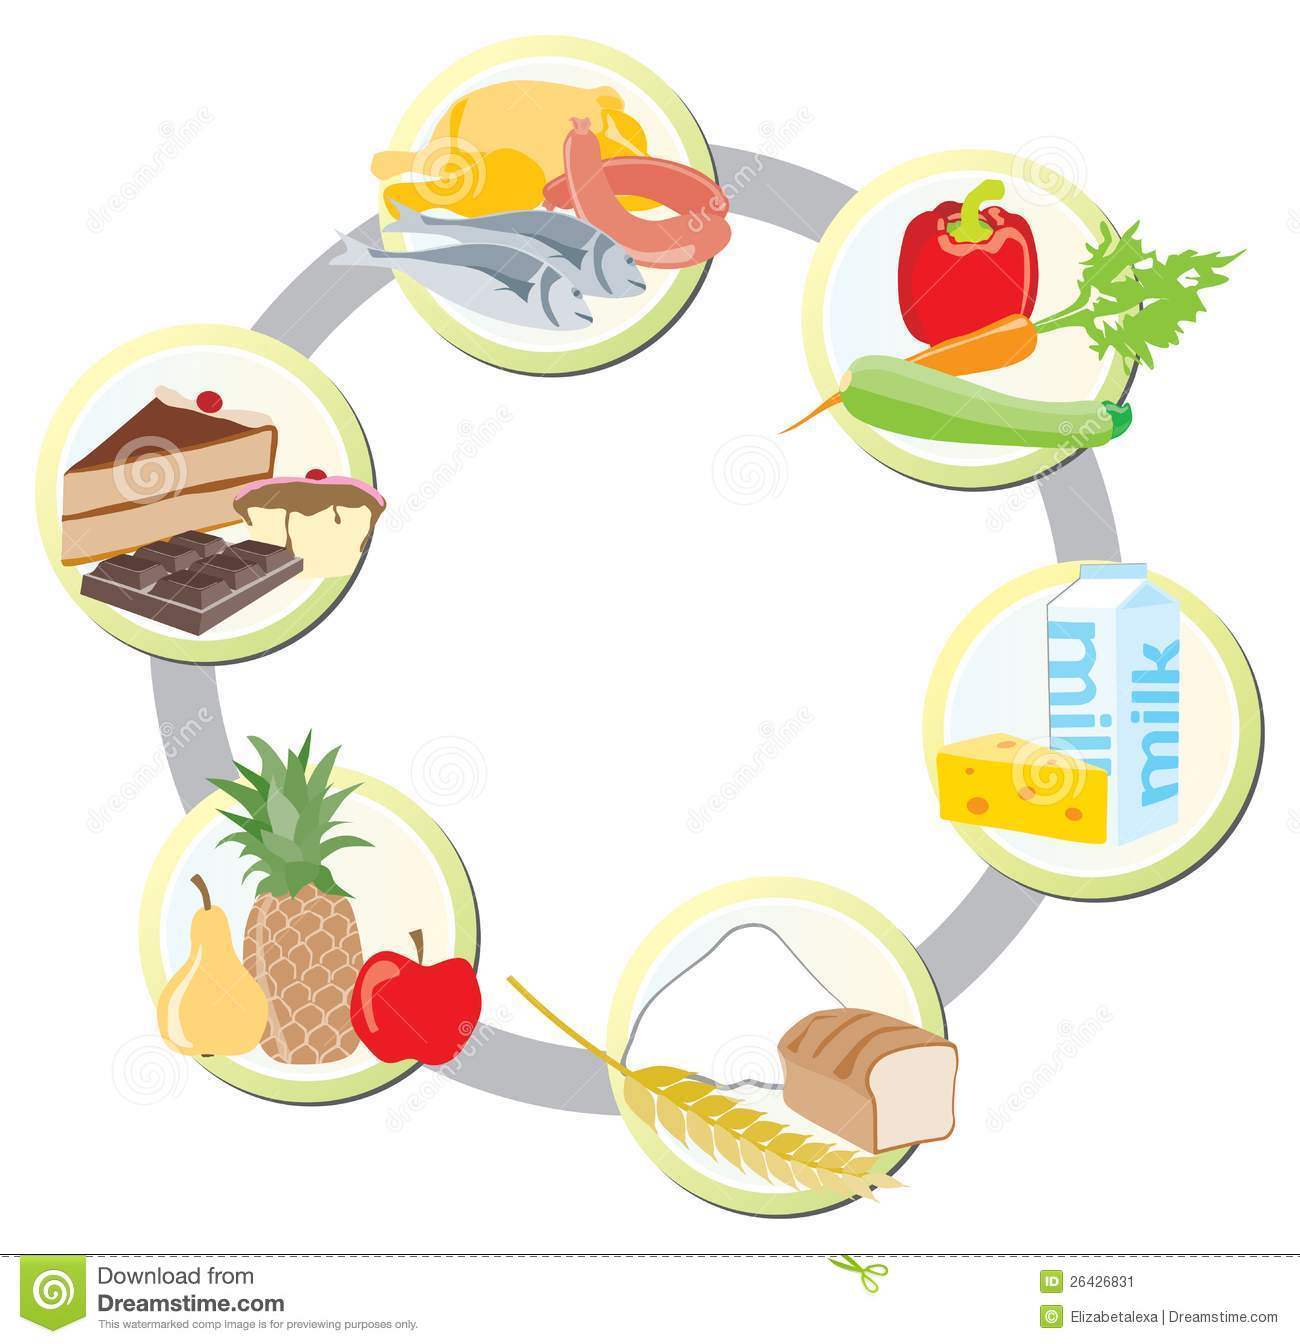 Food Pyramid For Kids Clipart The food in groups sto...